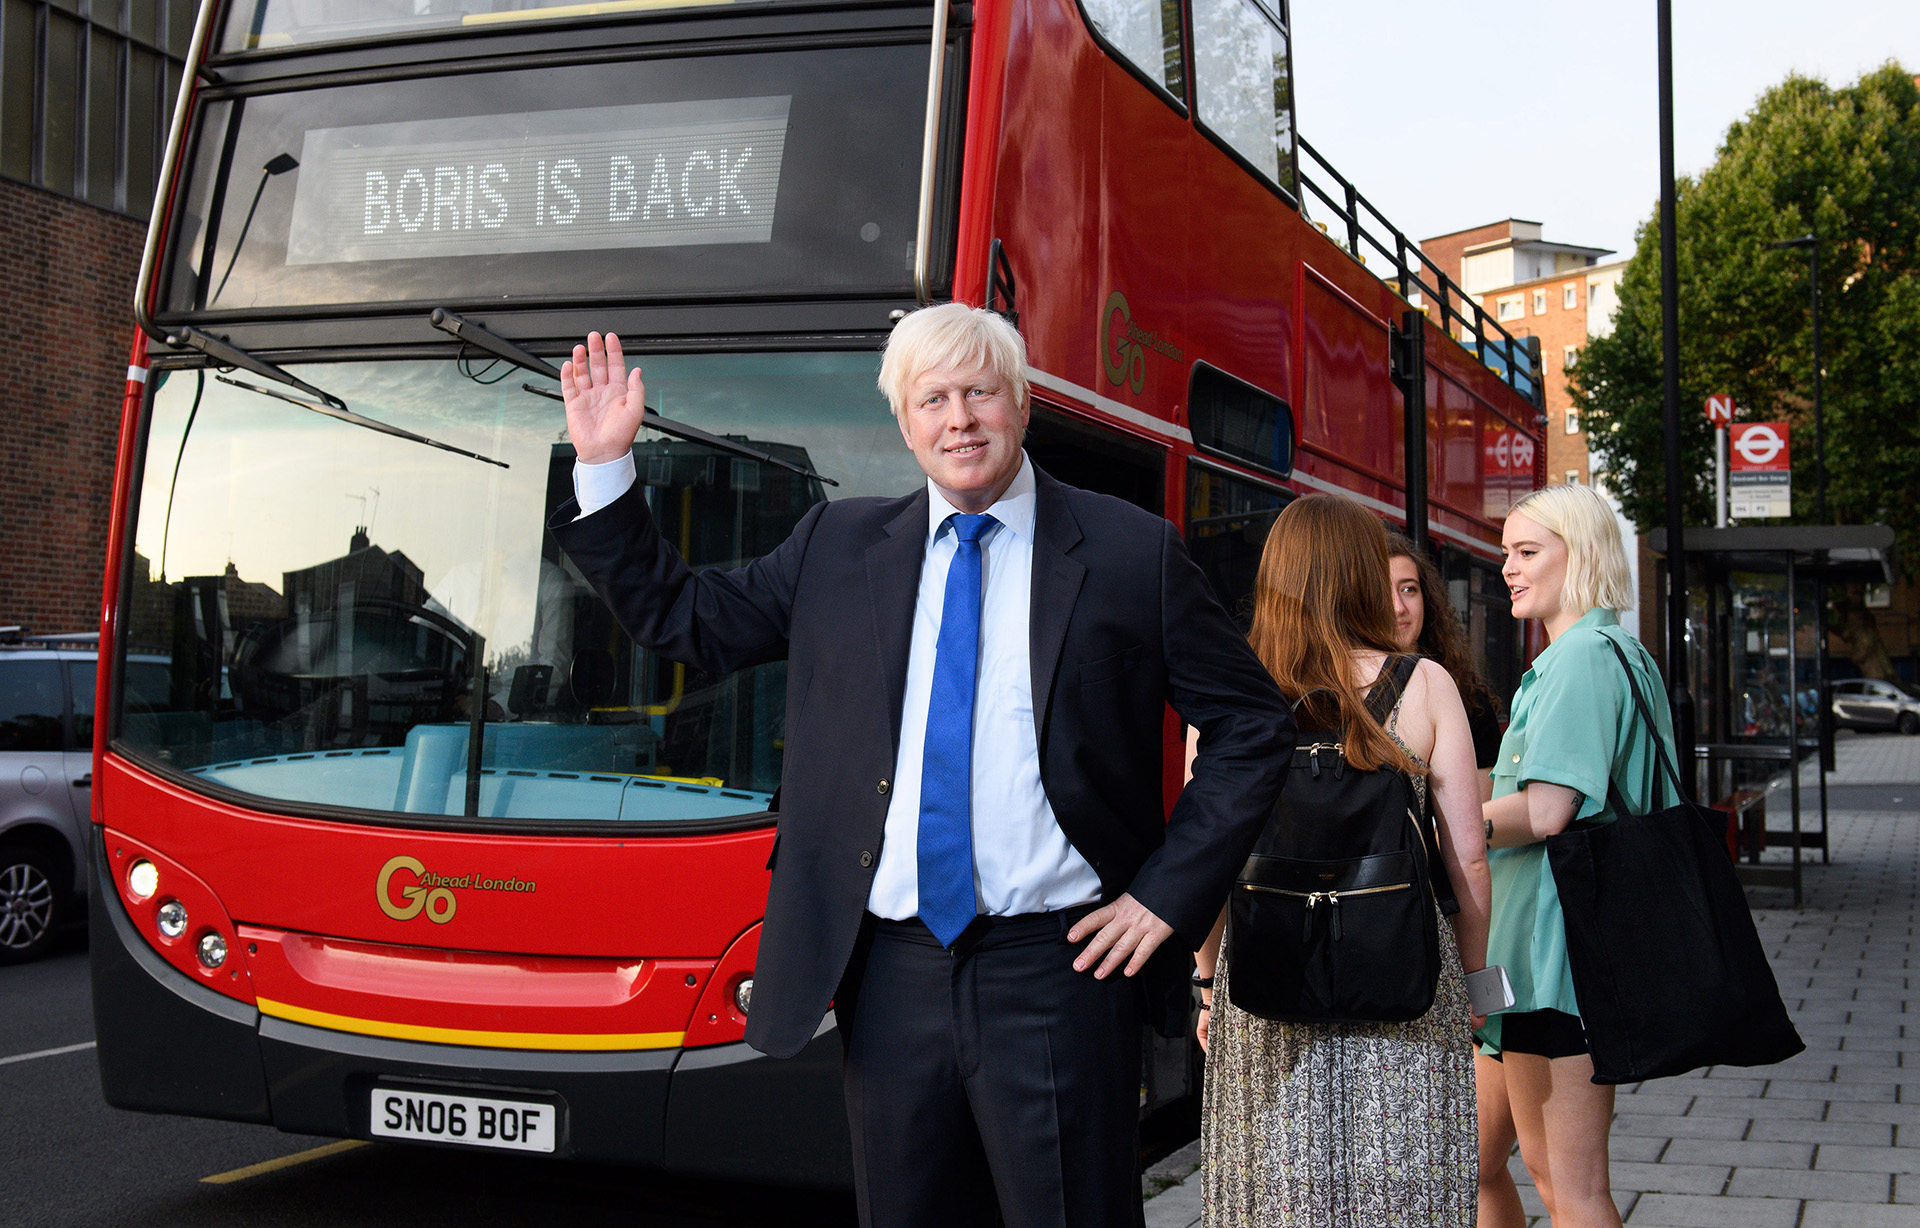 Boris Johnson figure in front of a London Bus